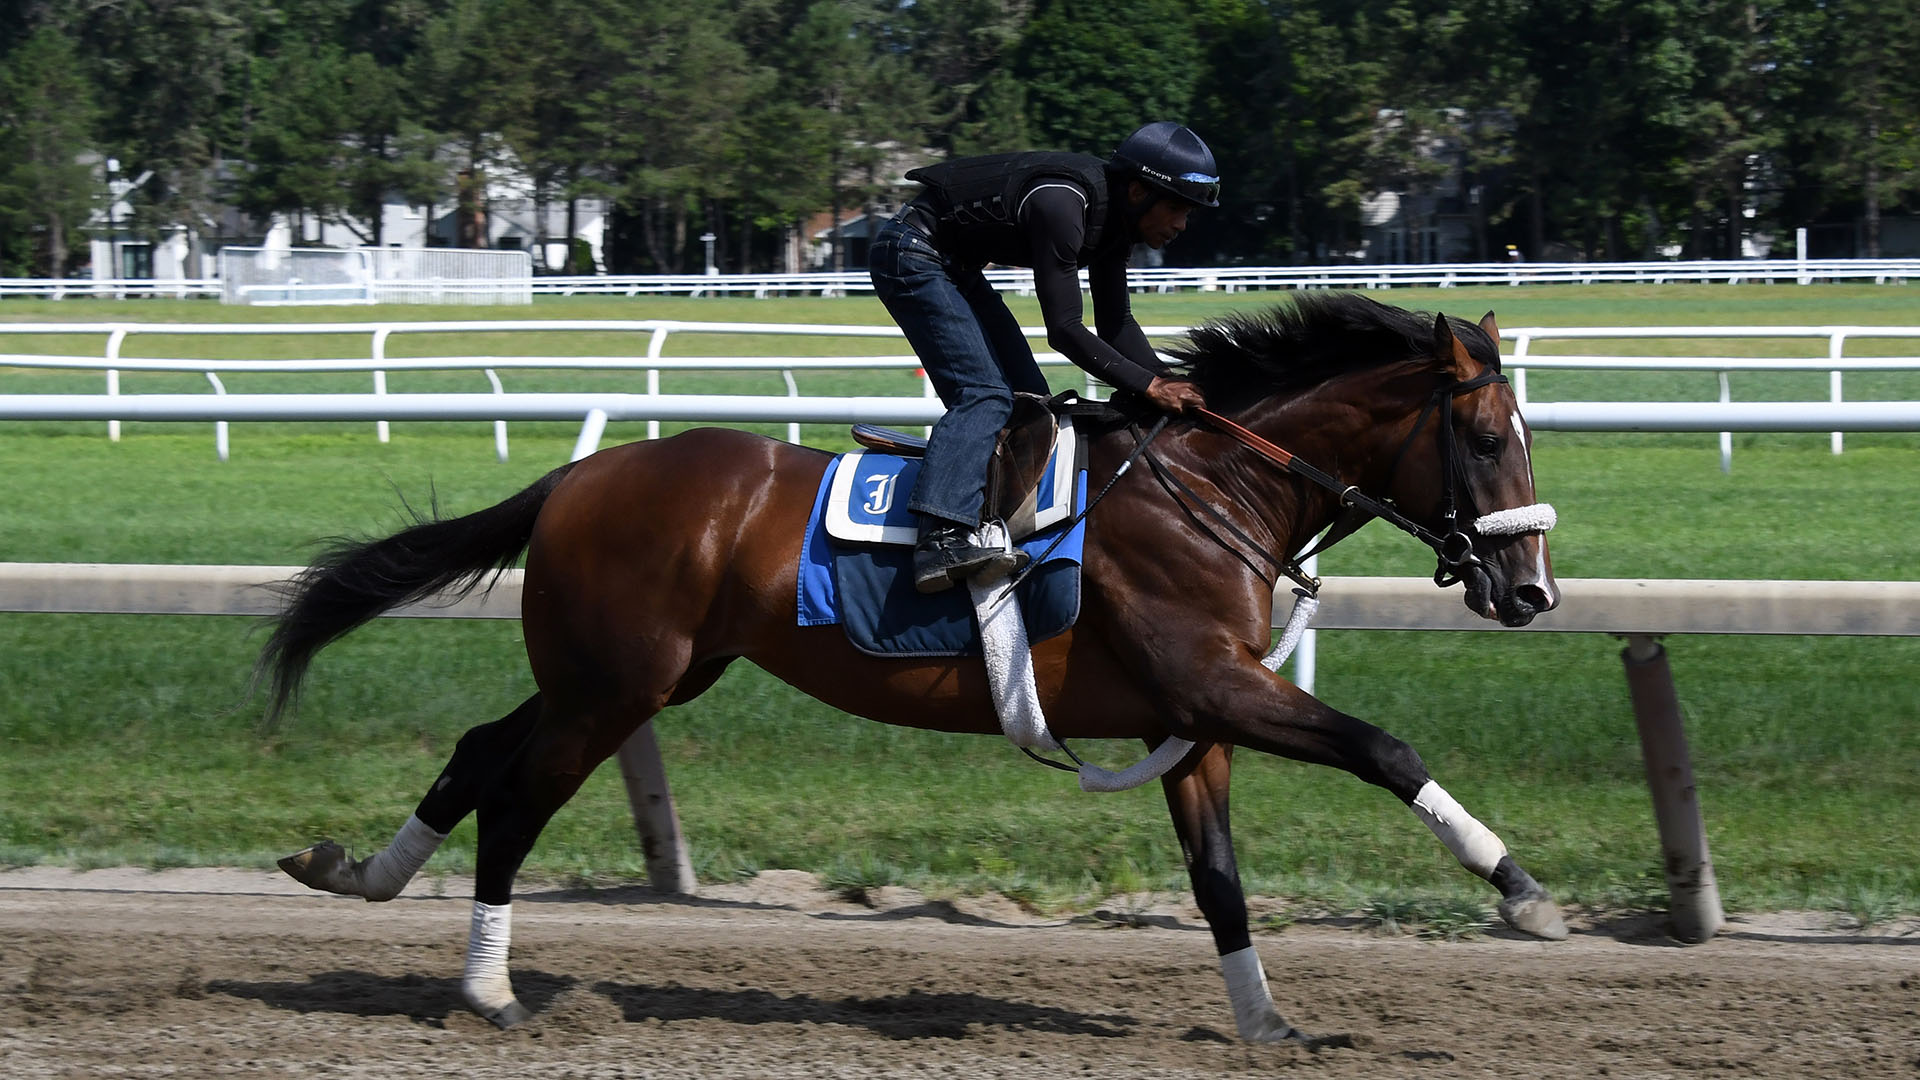 Punchline galloping at Saratoga Race Course.